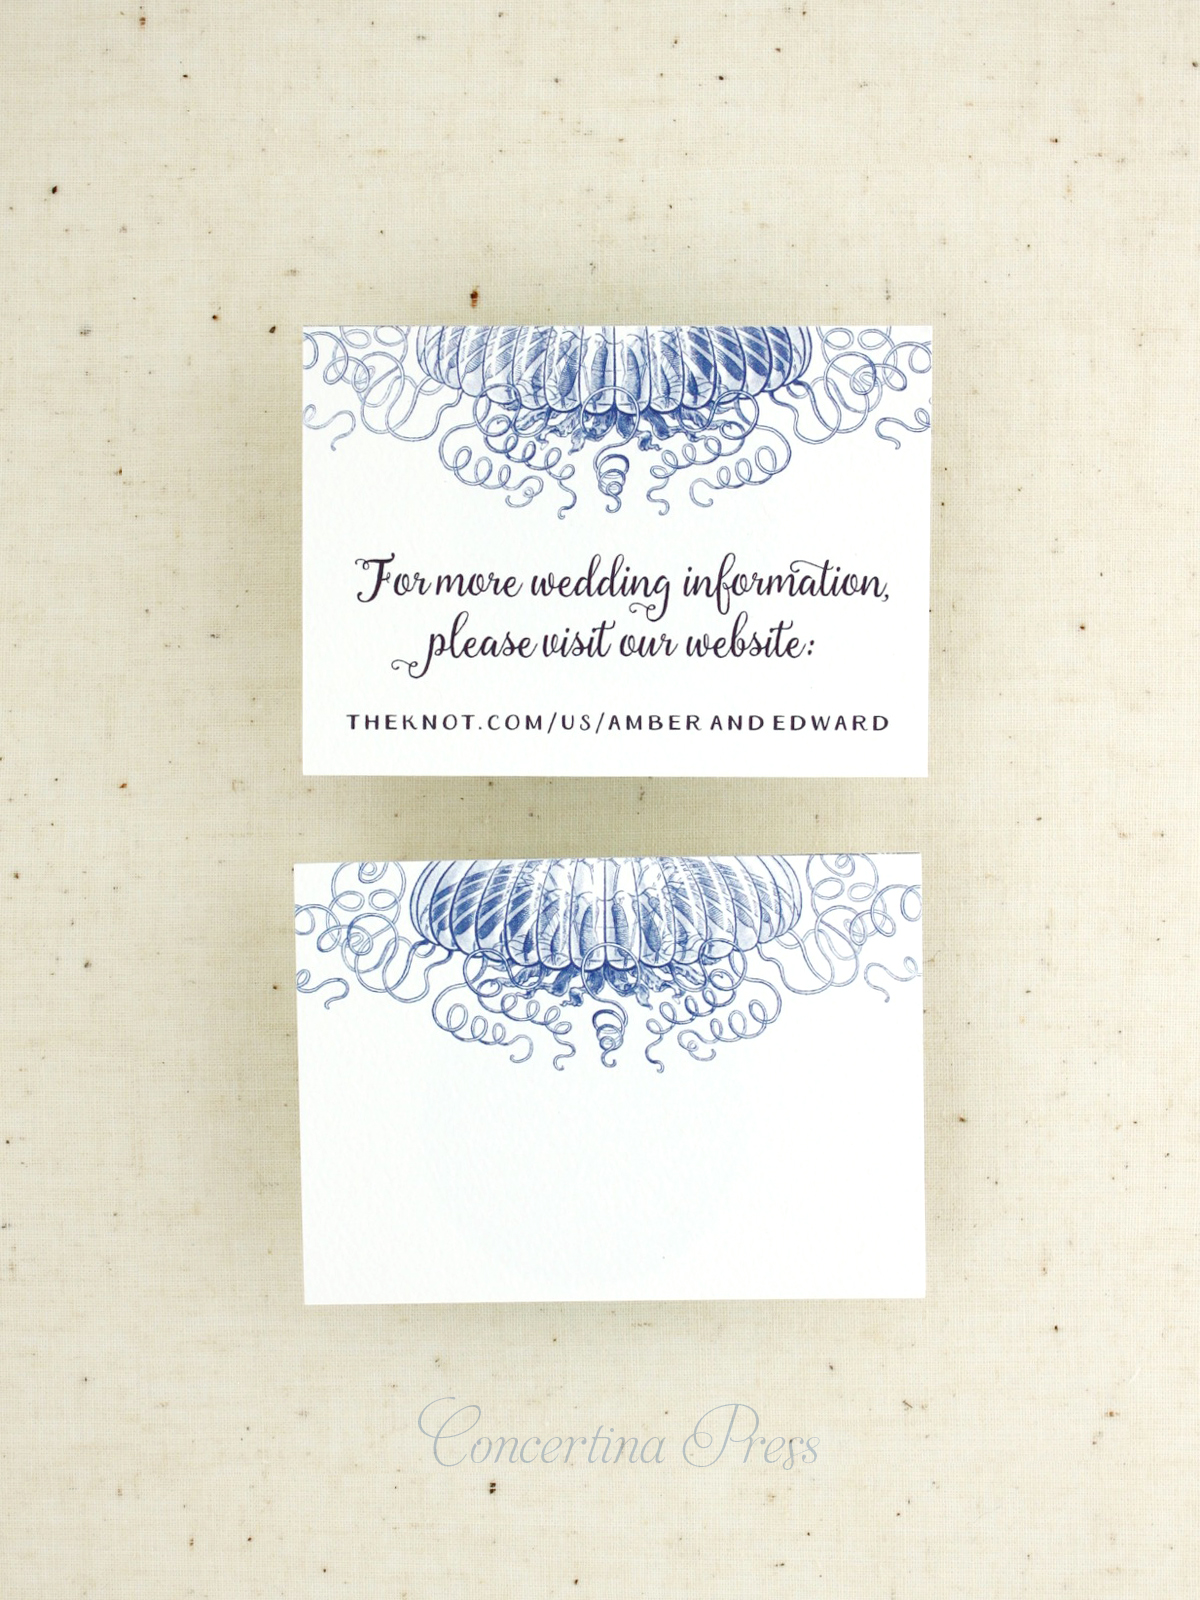 Jellyfish wedding website insert cards from Concertina Press